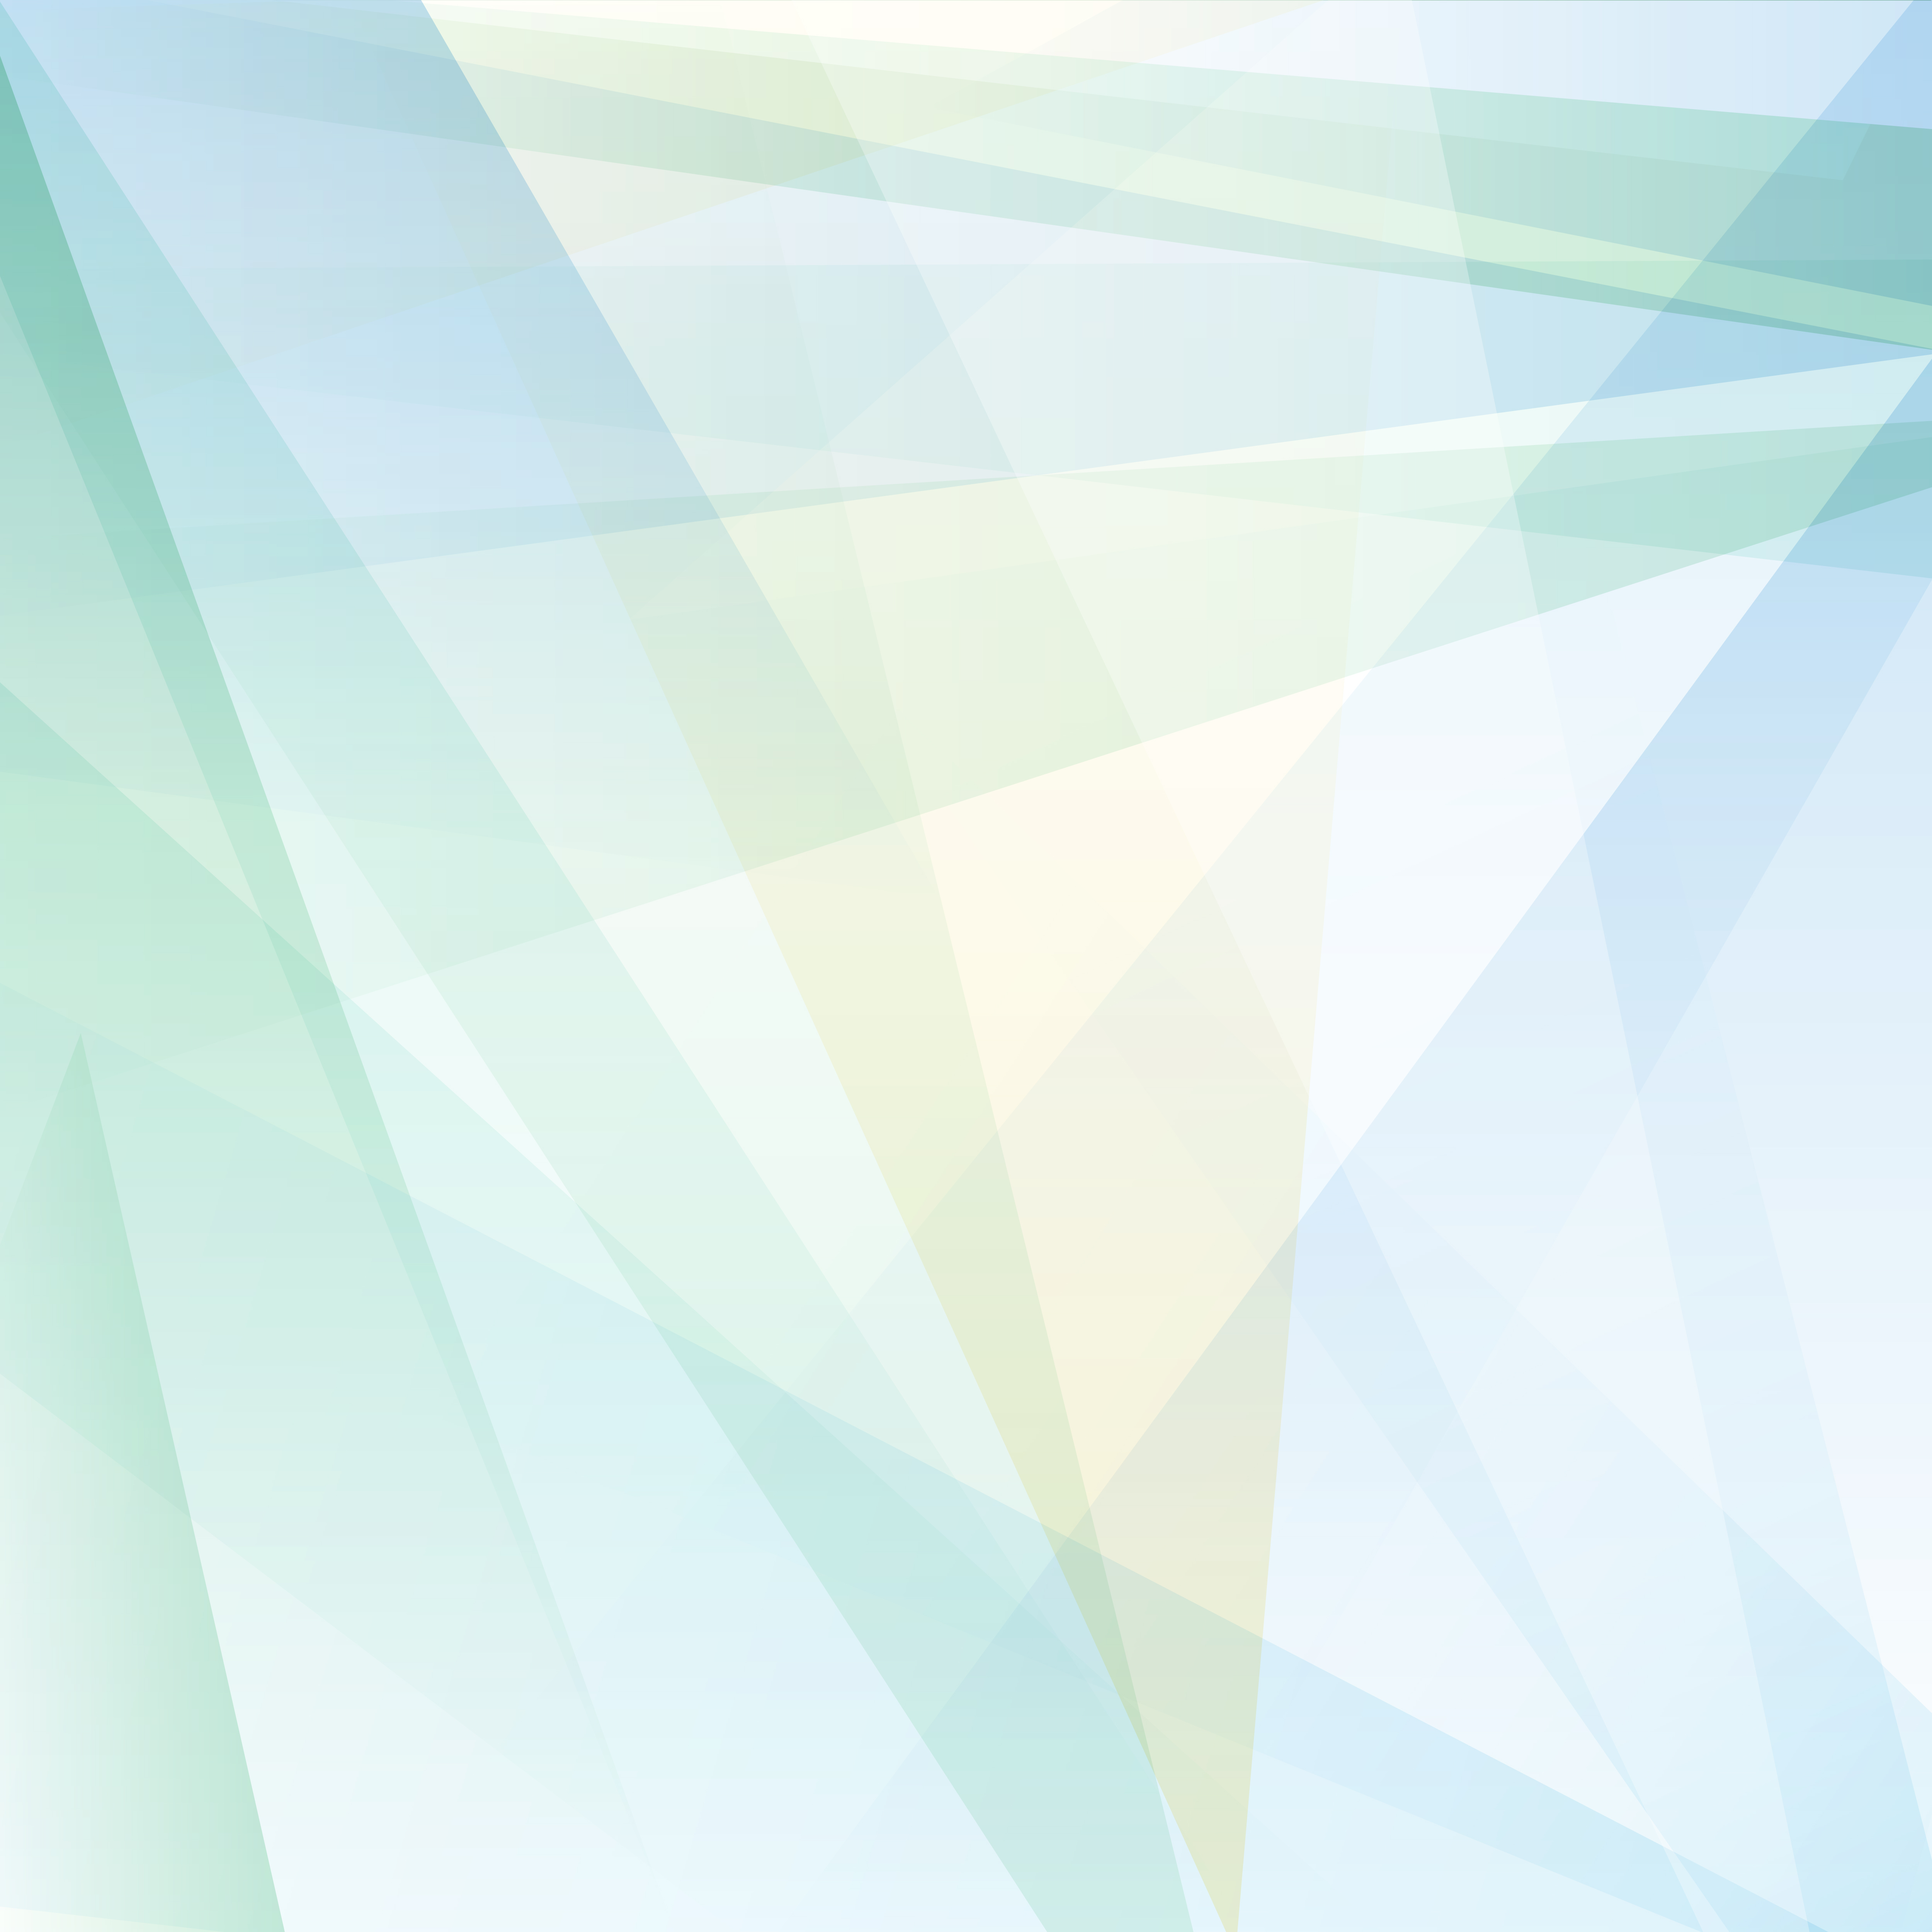 Geometric abstract light blue background for website ...